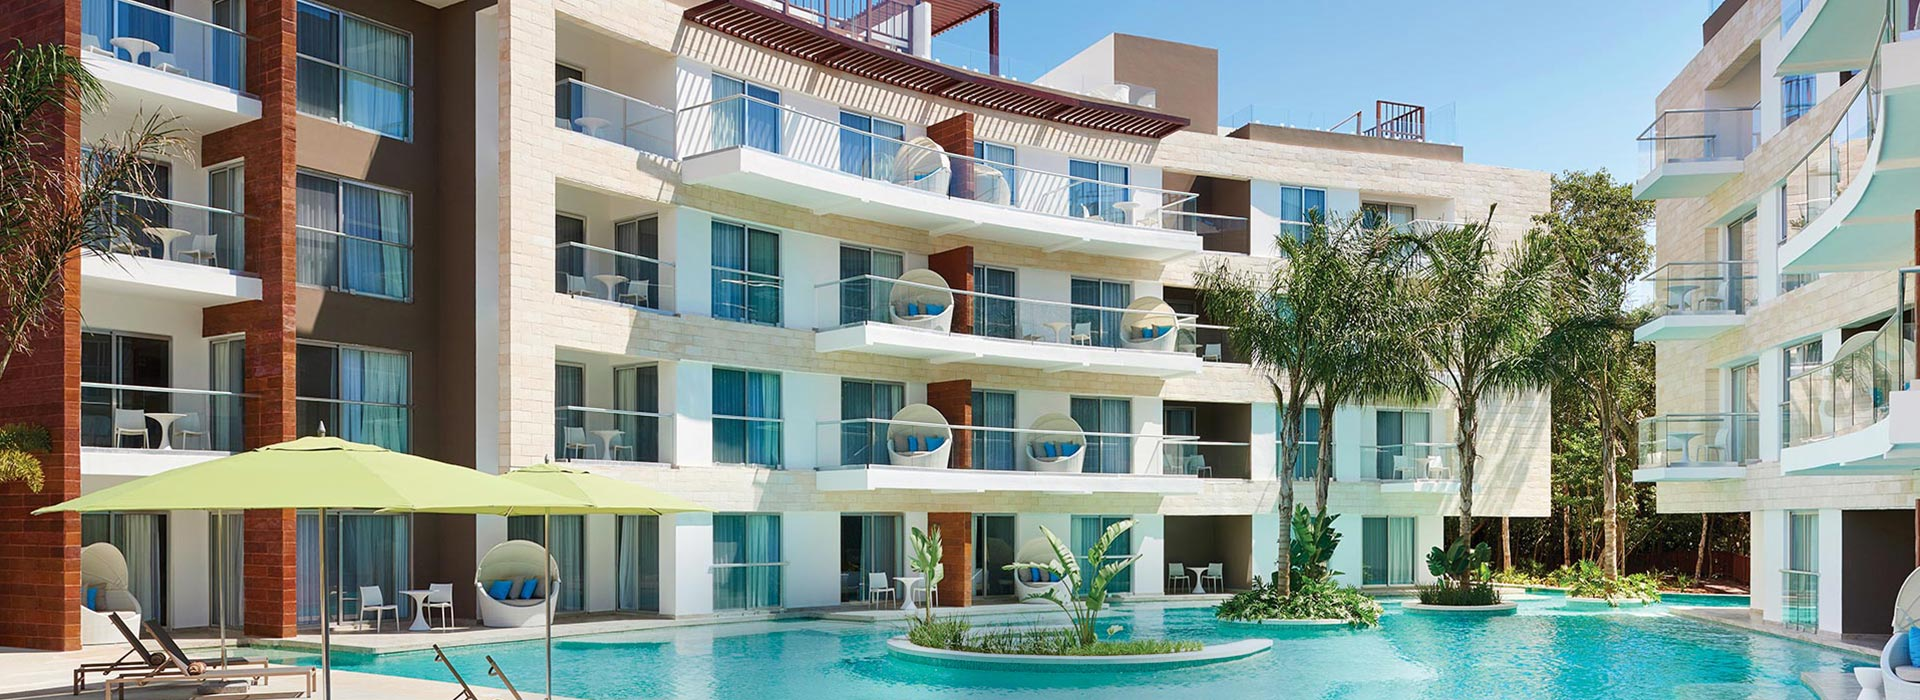 Condominio The Fives Pre Venta